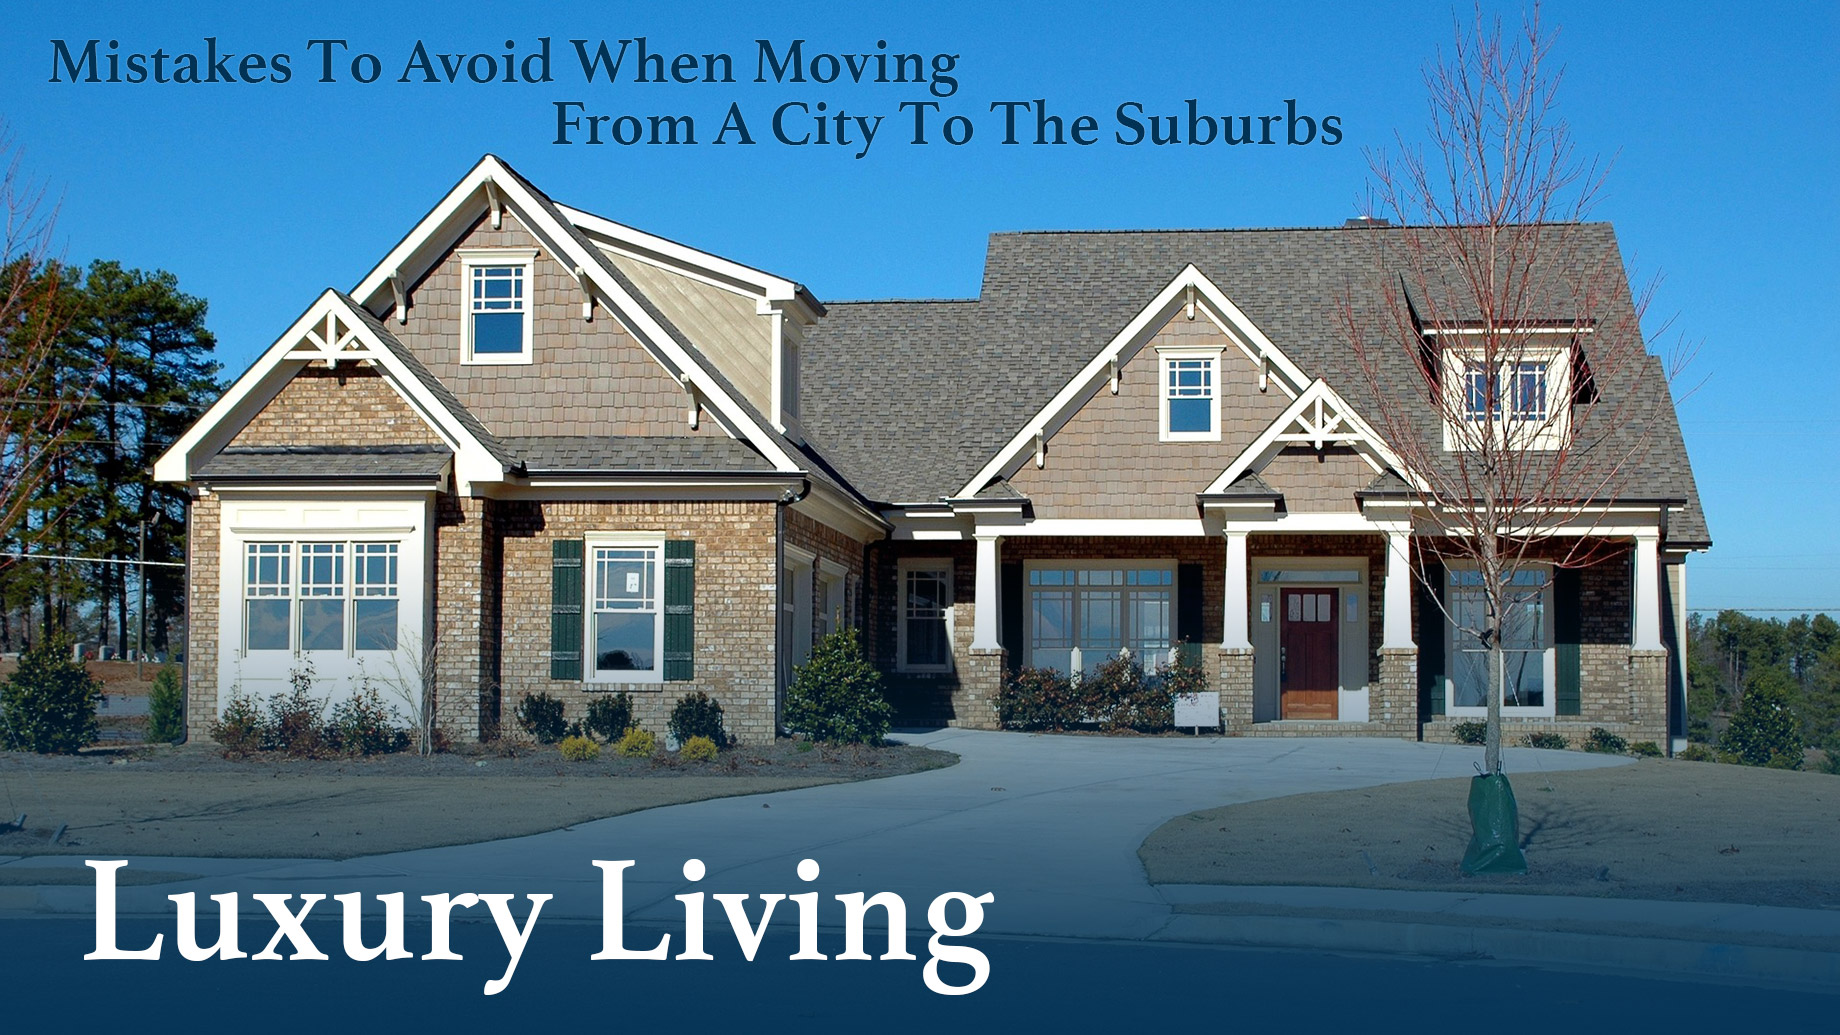 Mistakes To Avoid When Moving From A City To The Suburbs